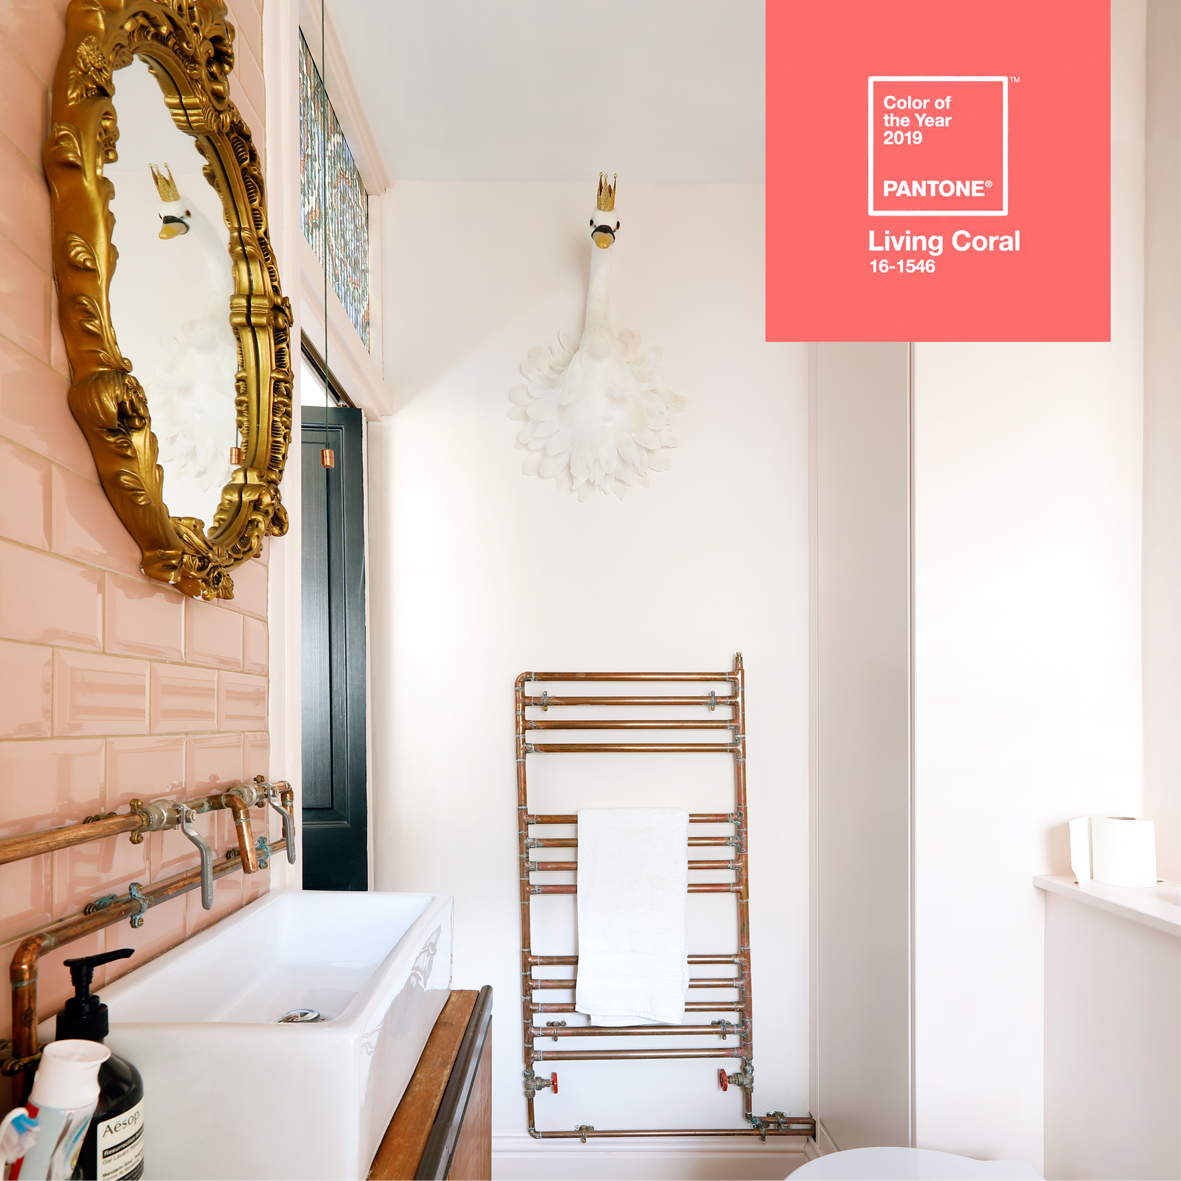 Living Coral Pantone Colour of the Year 2019 bathroom pink